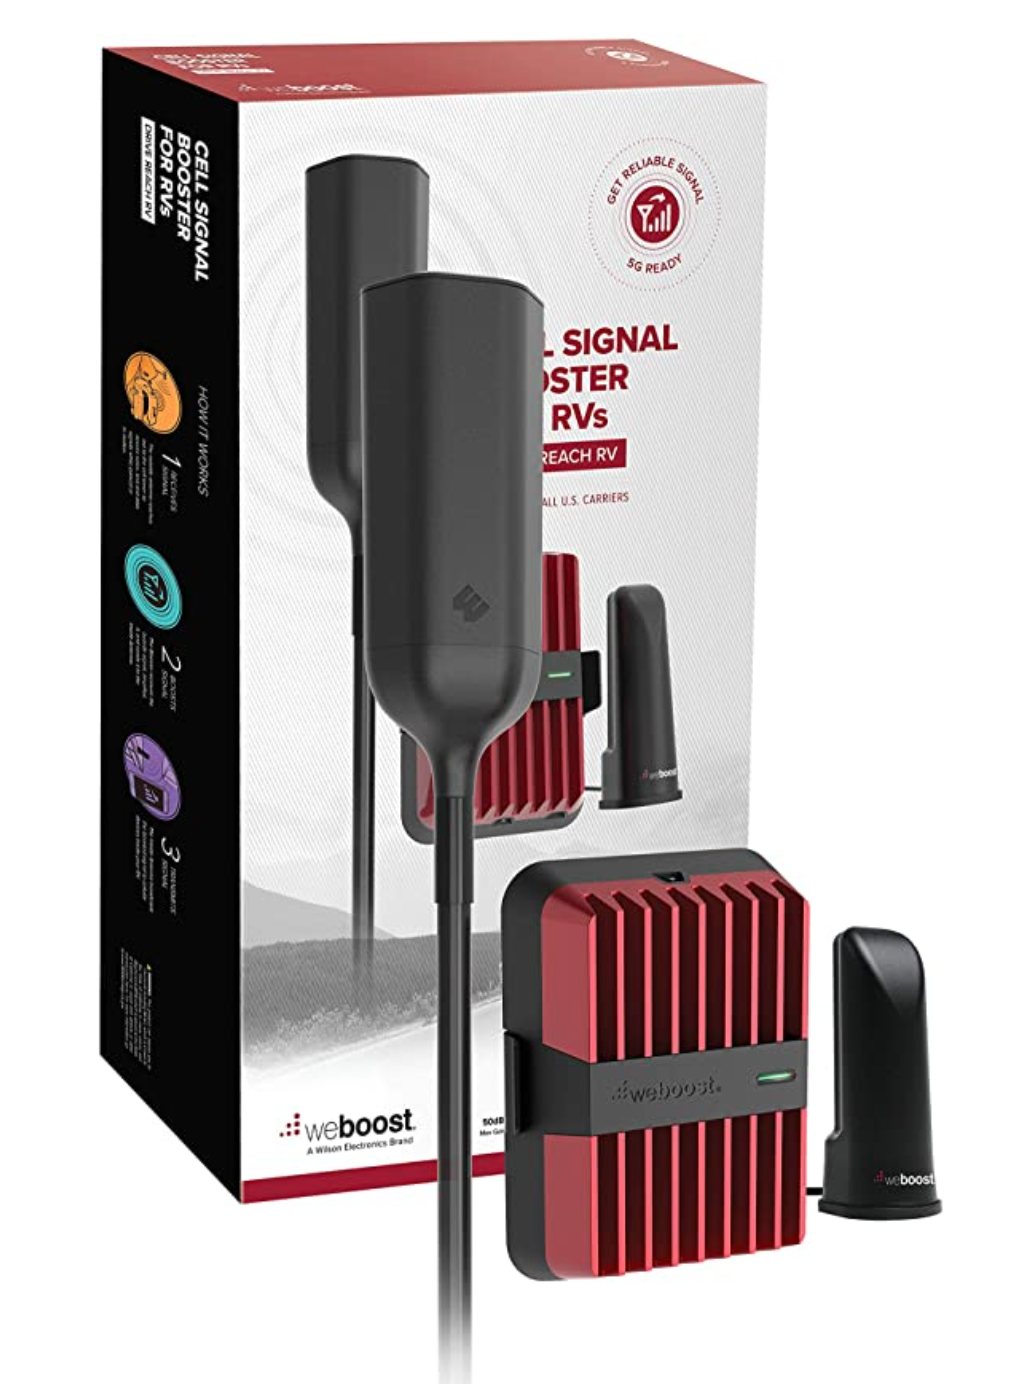 best wifi booster for rv weboost signal booster kit